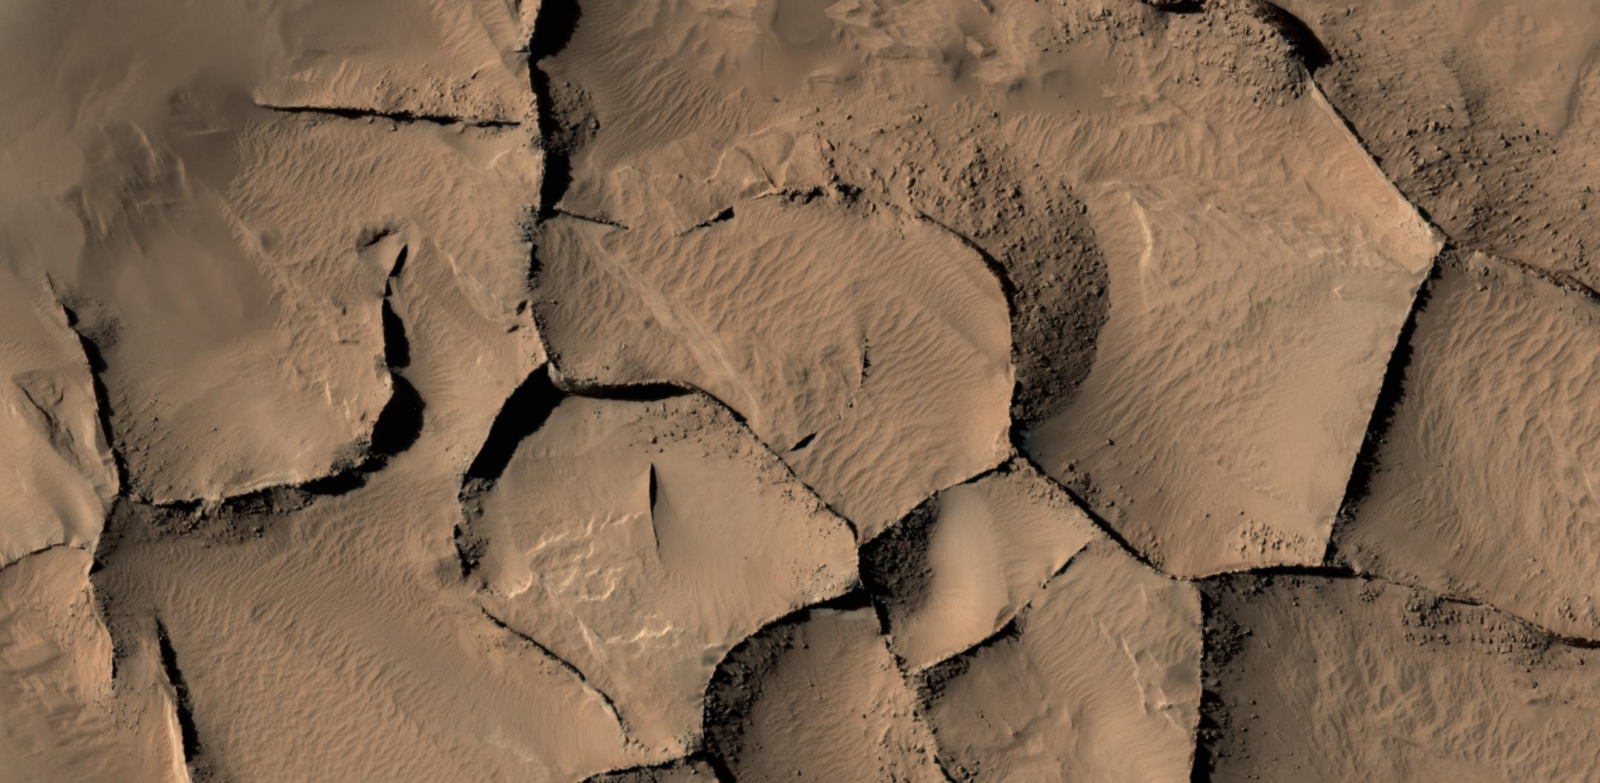 Blade-Like ridges on Mars outline polygons